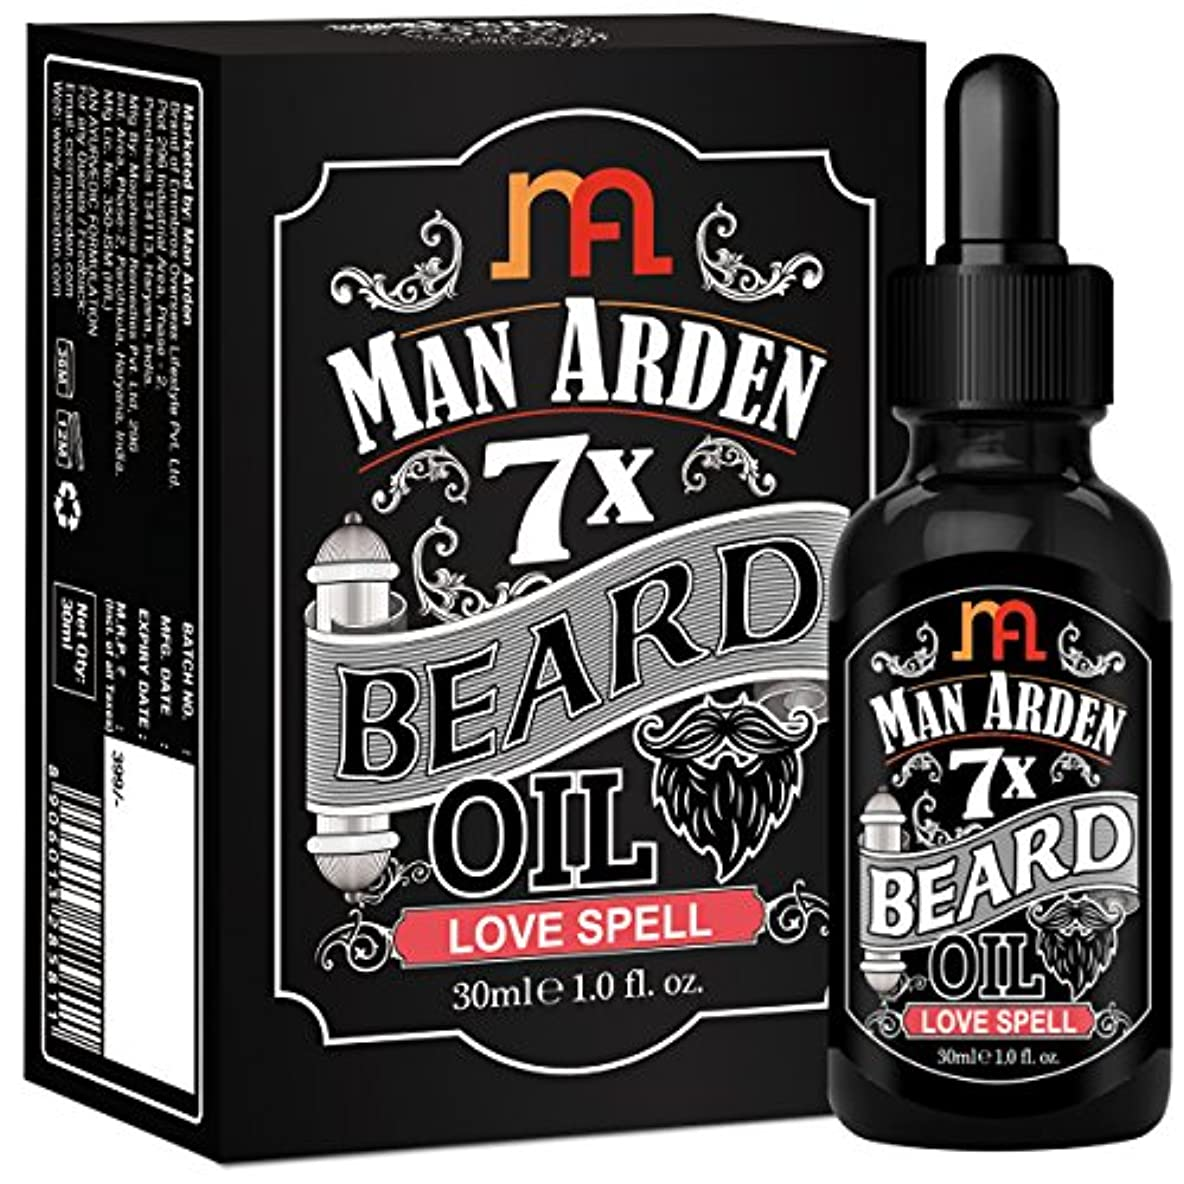 カトリック教徒同志ボールMan Arden 7X Beard Oil 30ml (Love Spell) - 7 Premium Oils Blend For Beard Growth & Nourishment